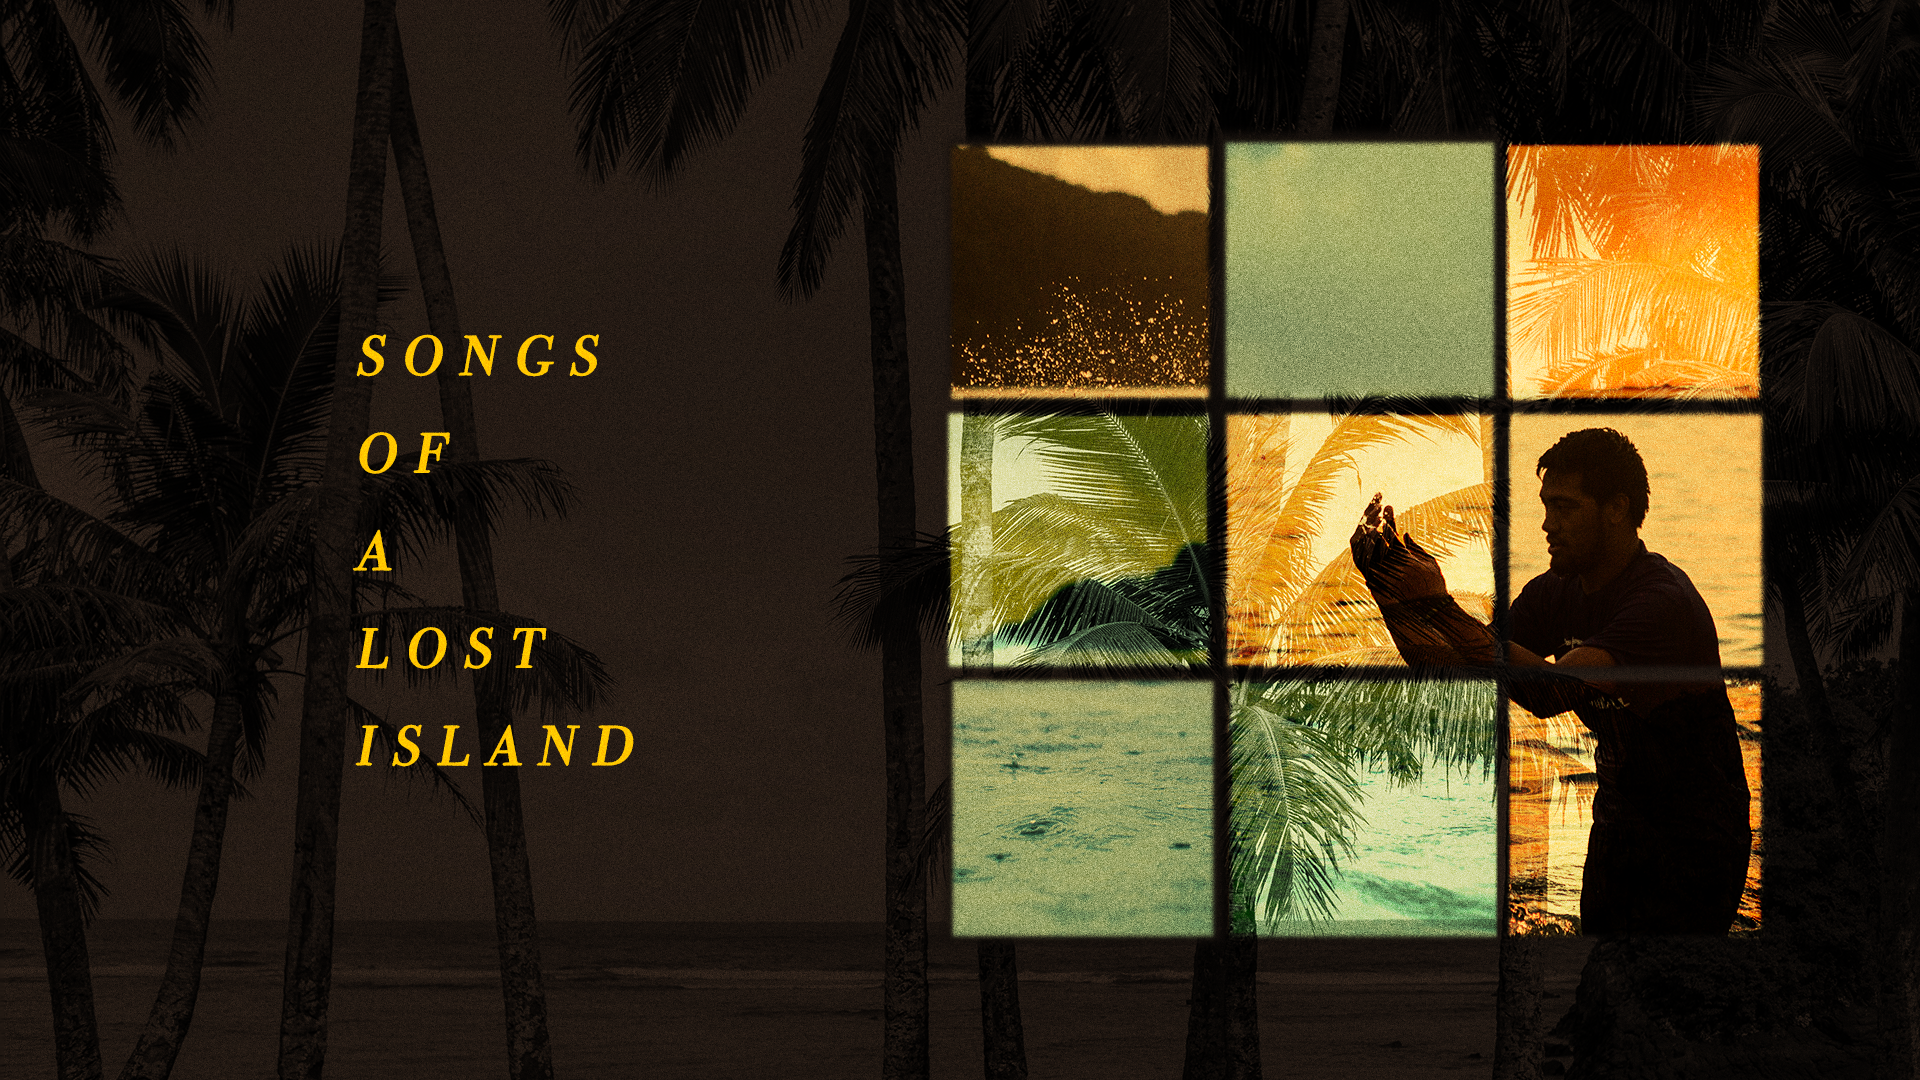 Songs of A Lost Island